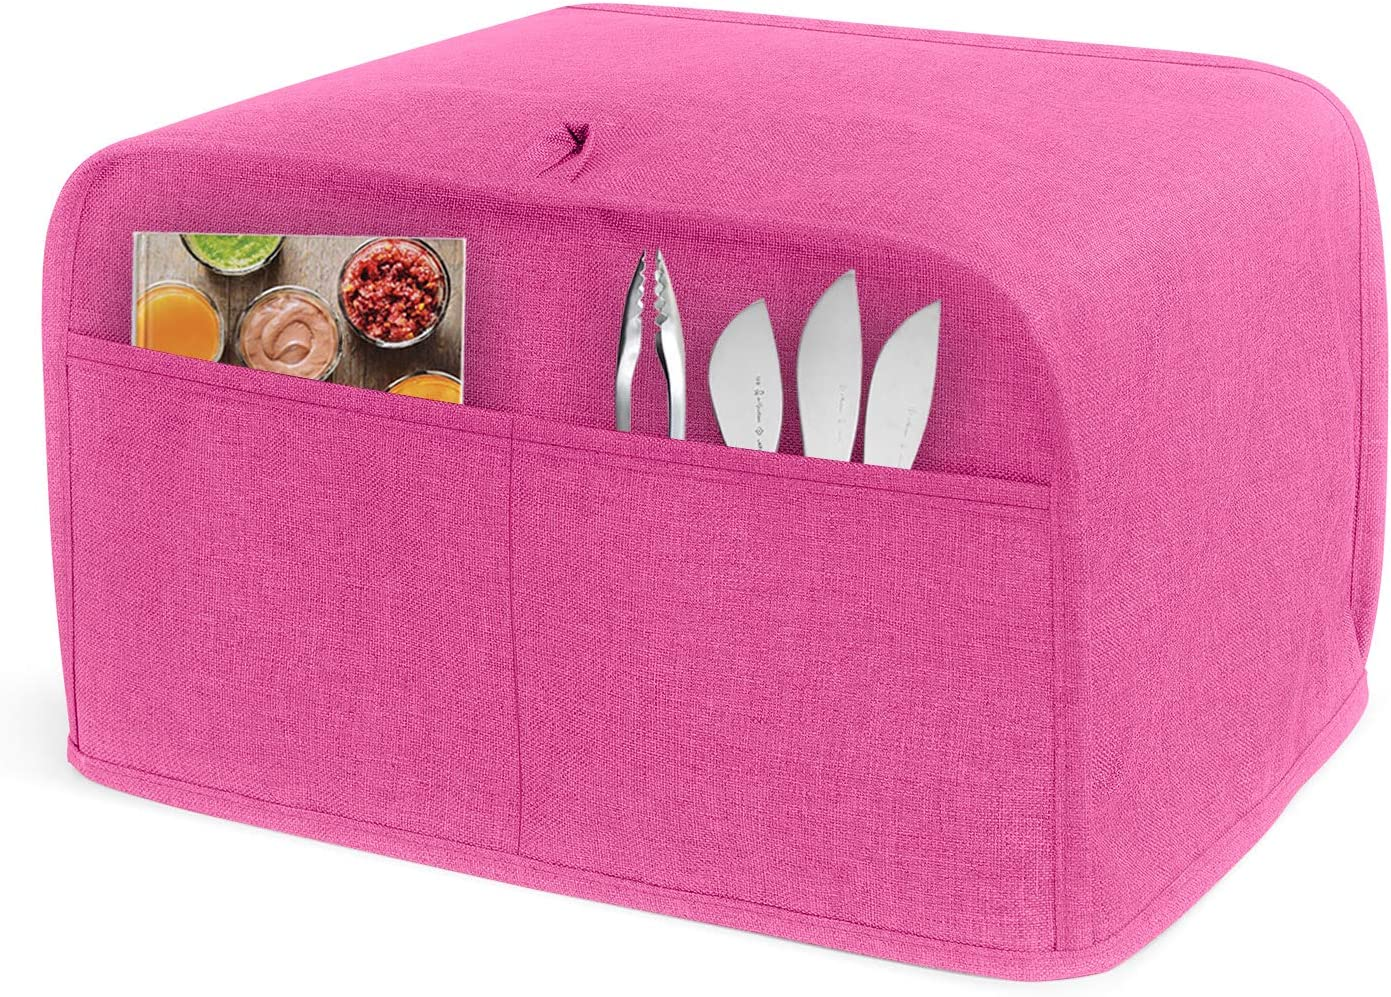 LUXJA 4 Slice Toaster Cover (12.5 x 10 x 8 inches), Toaster Cover with 2 Pockets (Fits for Most Major 4 Slice Toasters), Pink